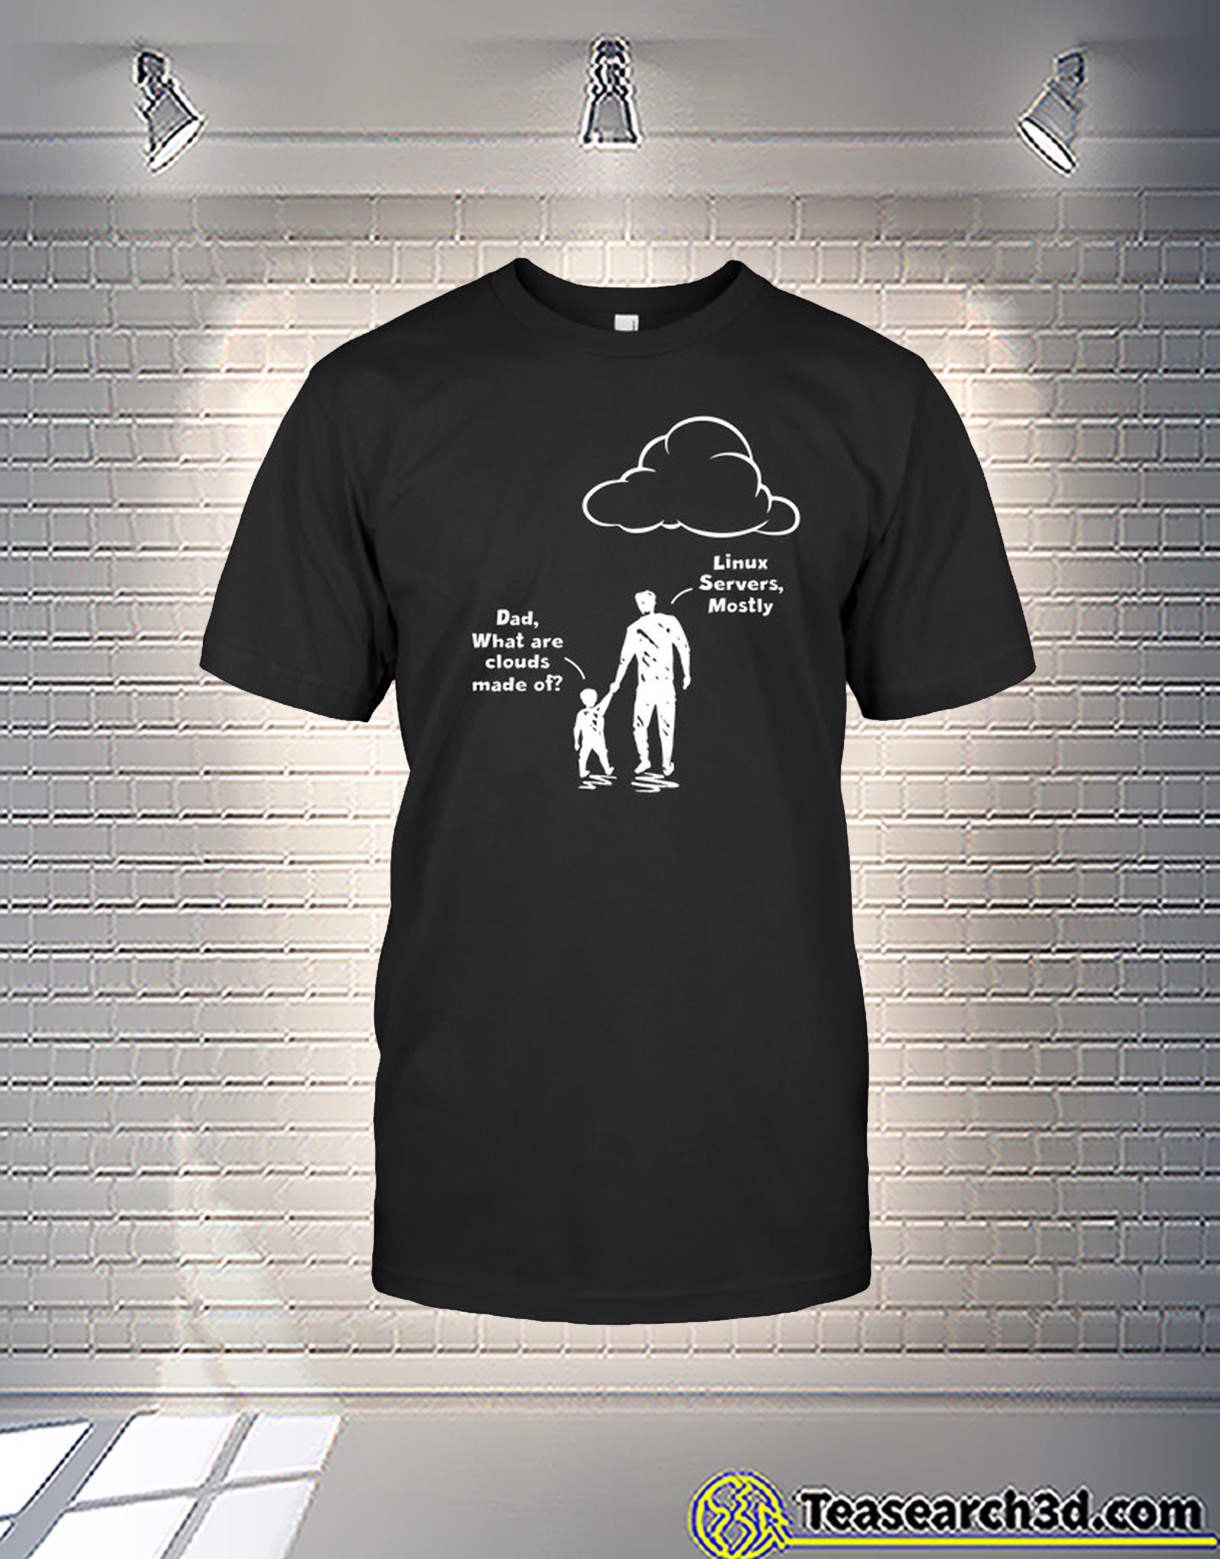 Dad what are clouds made of linux severs mostly t-shirt